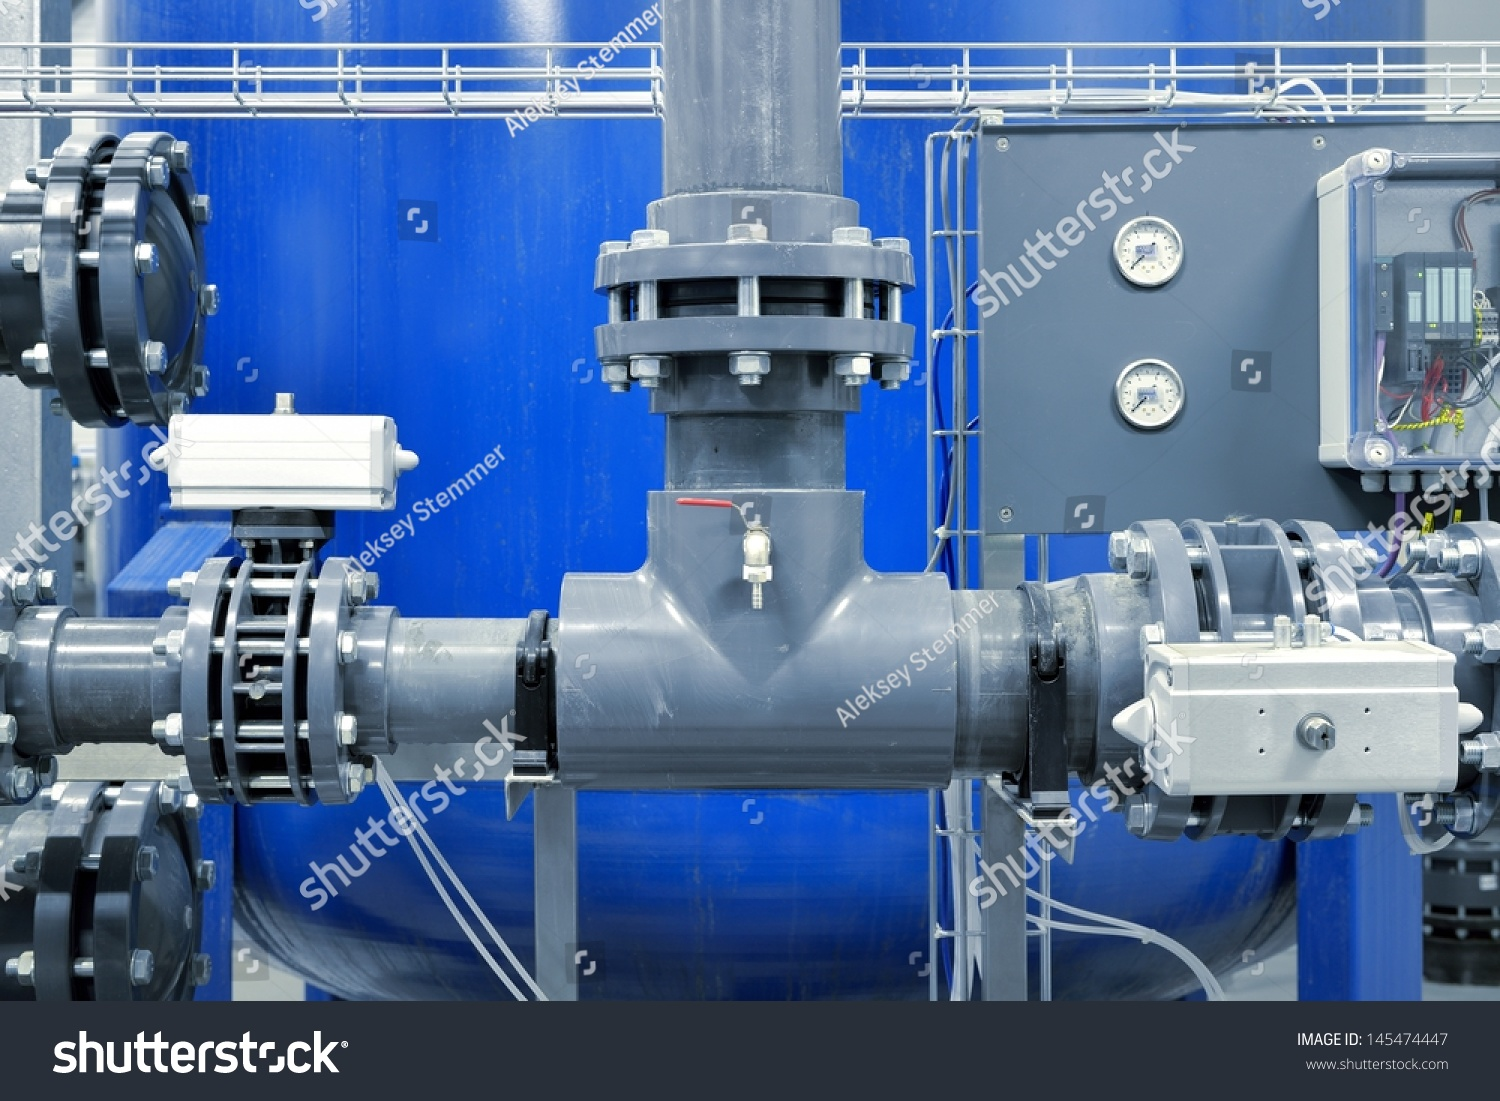 new plastic pipes and colorful equipment in industrial boiler room ...